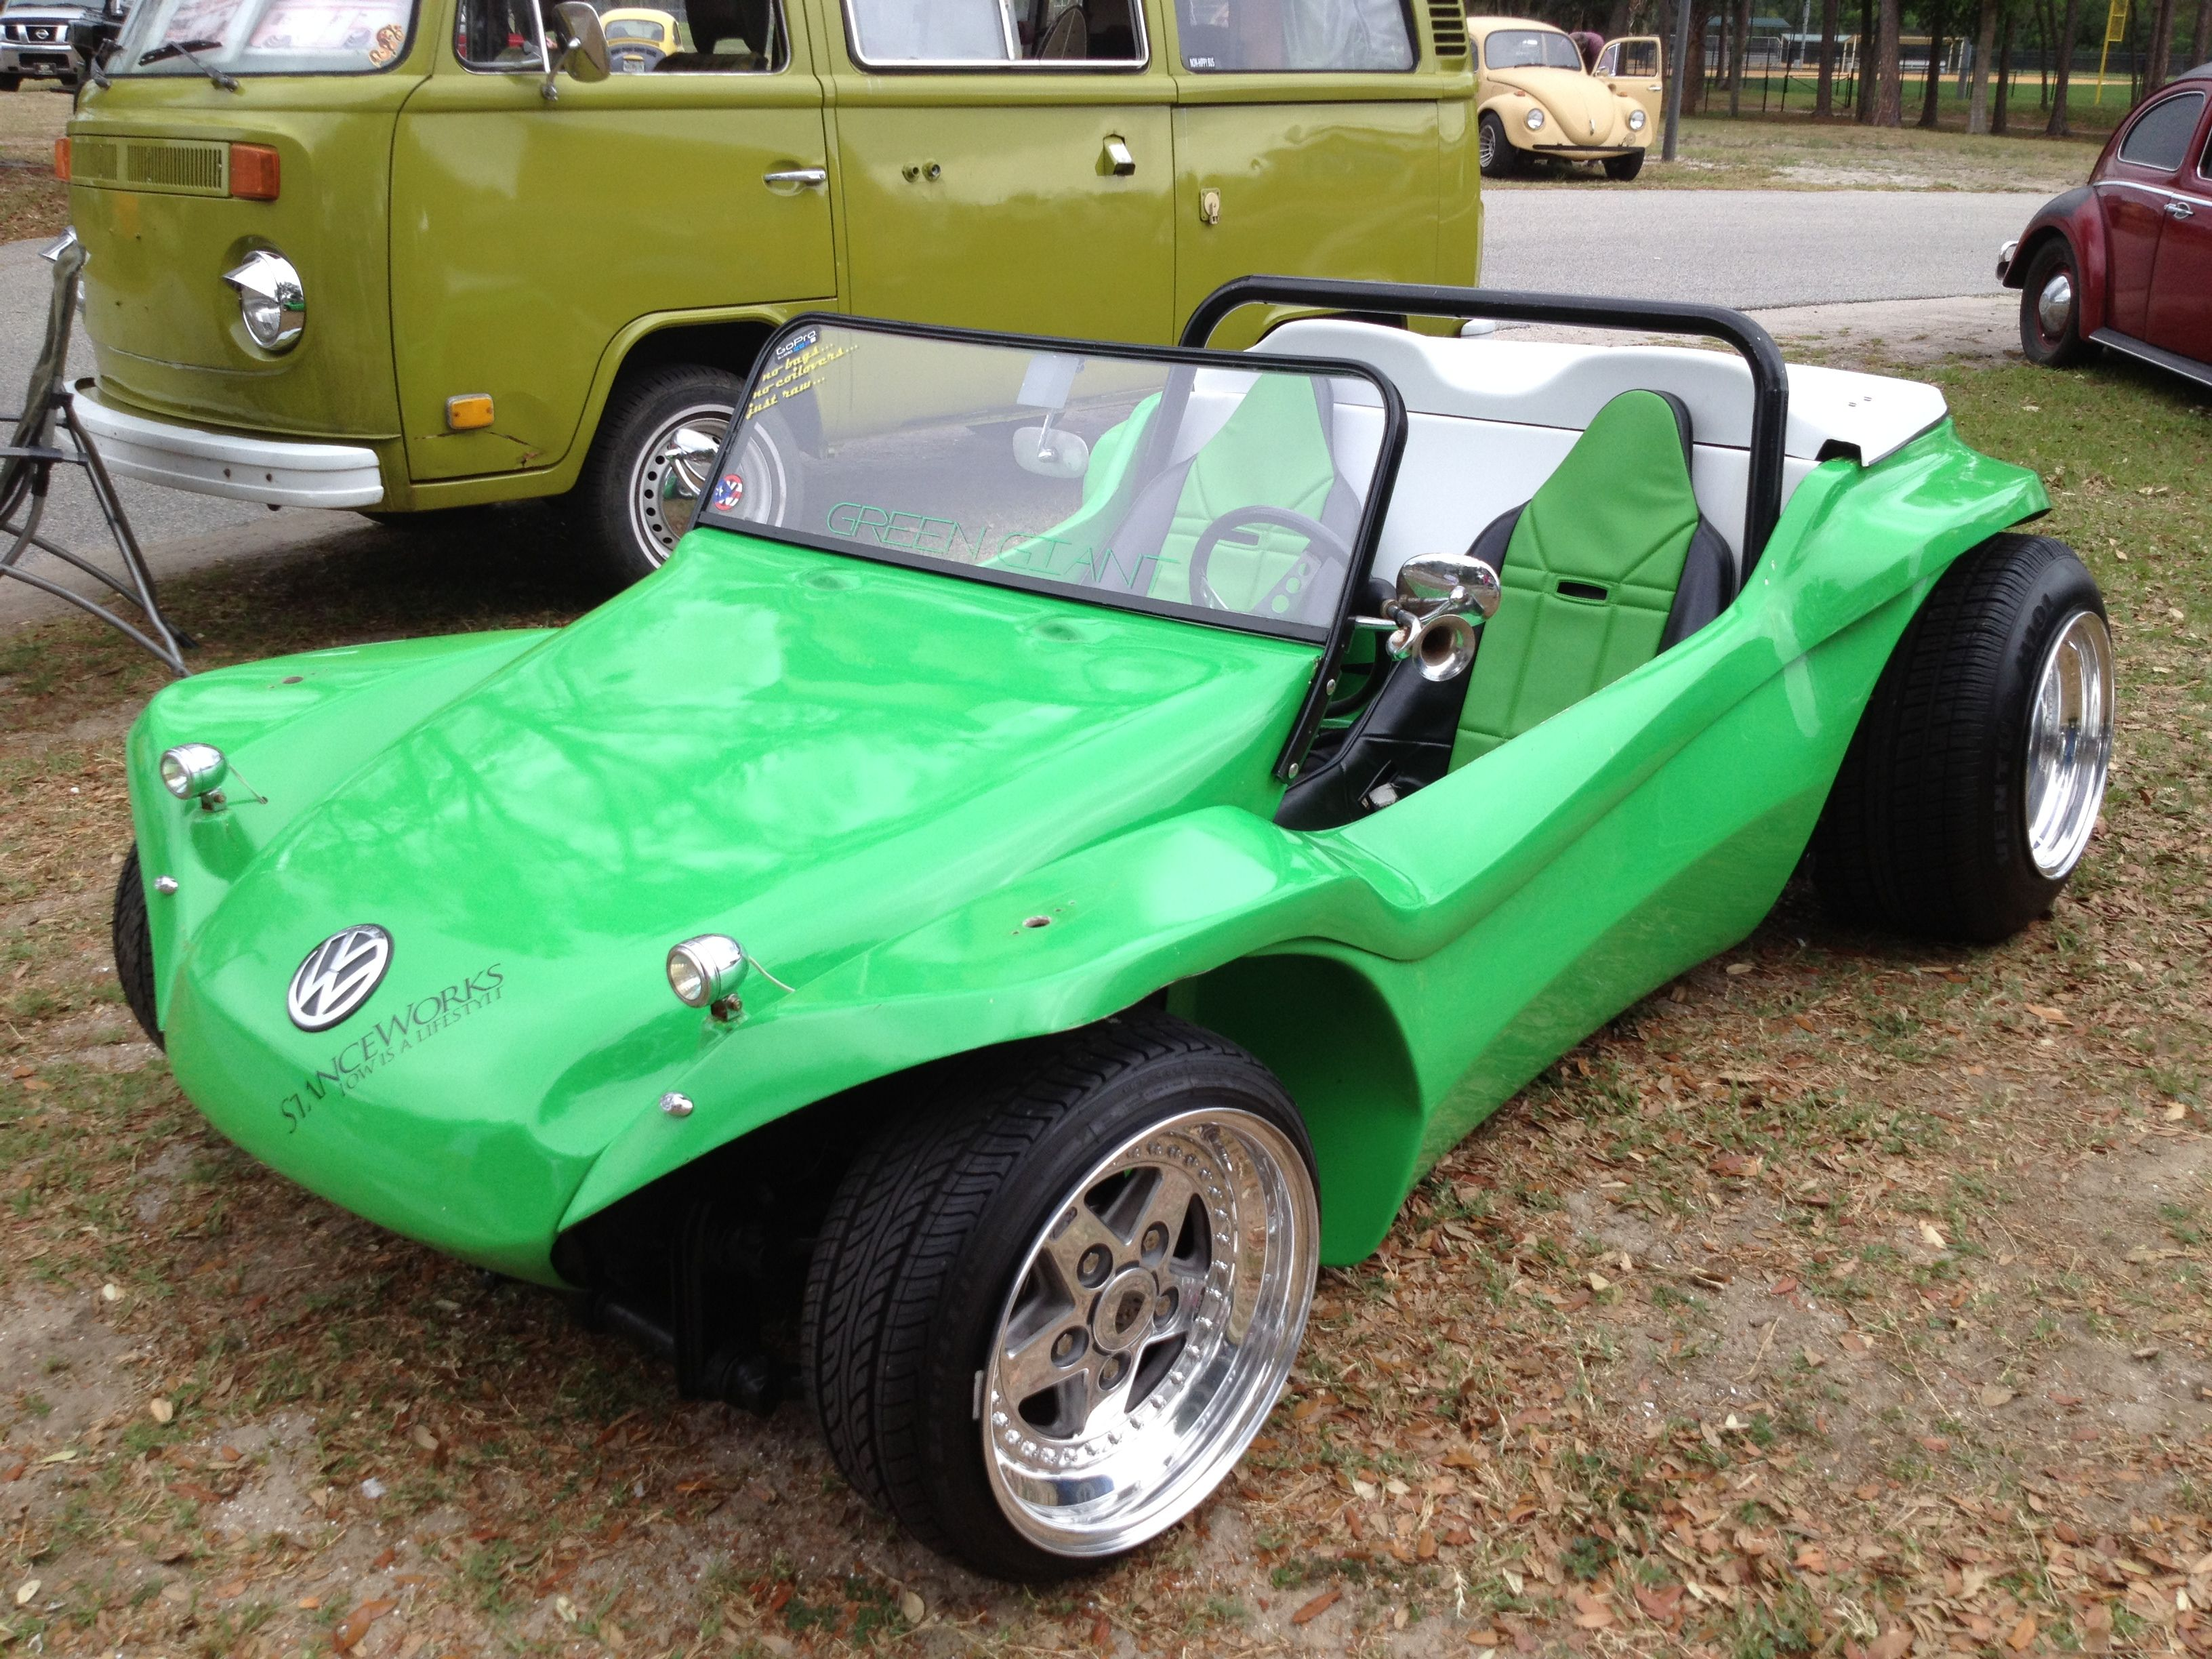 lil green dune buggy vw buggies pinterest dune dune buggies and 99. Black Bedroom Furniture Sets. Home Design Ideas